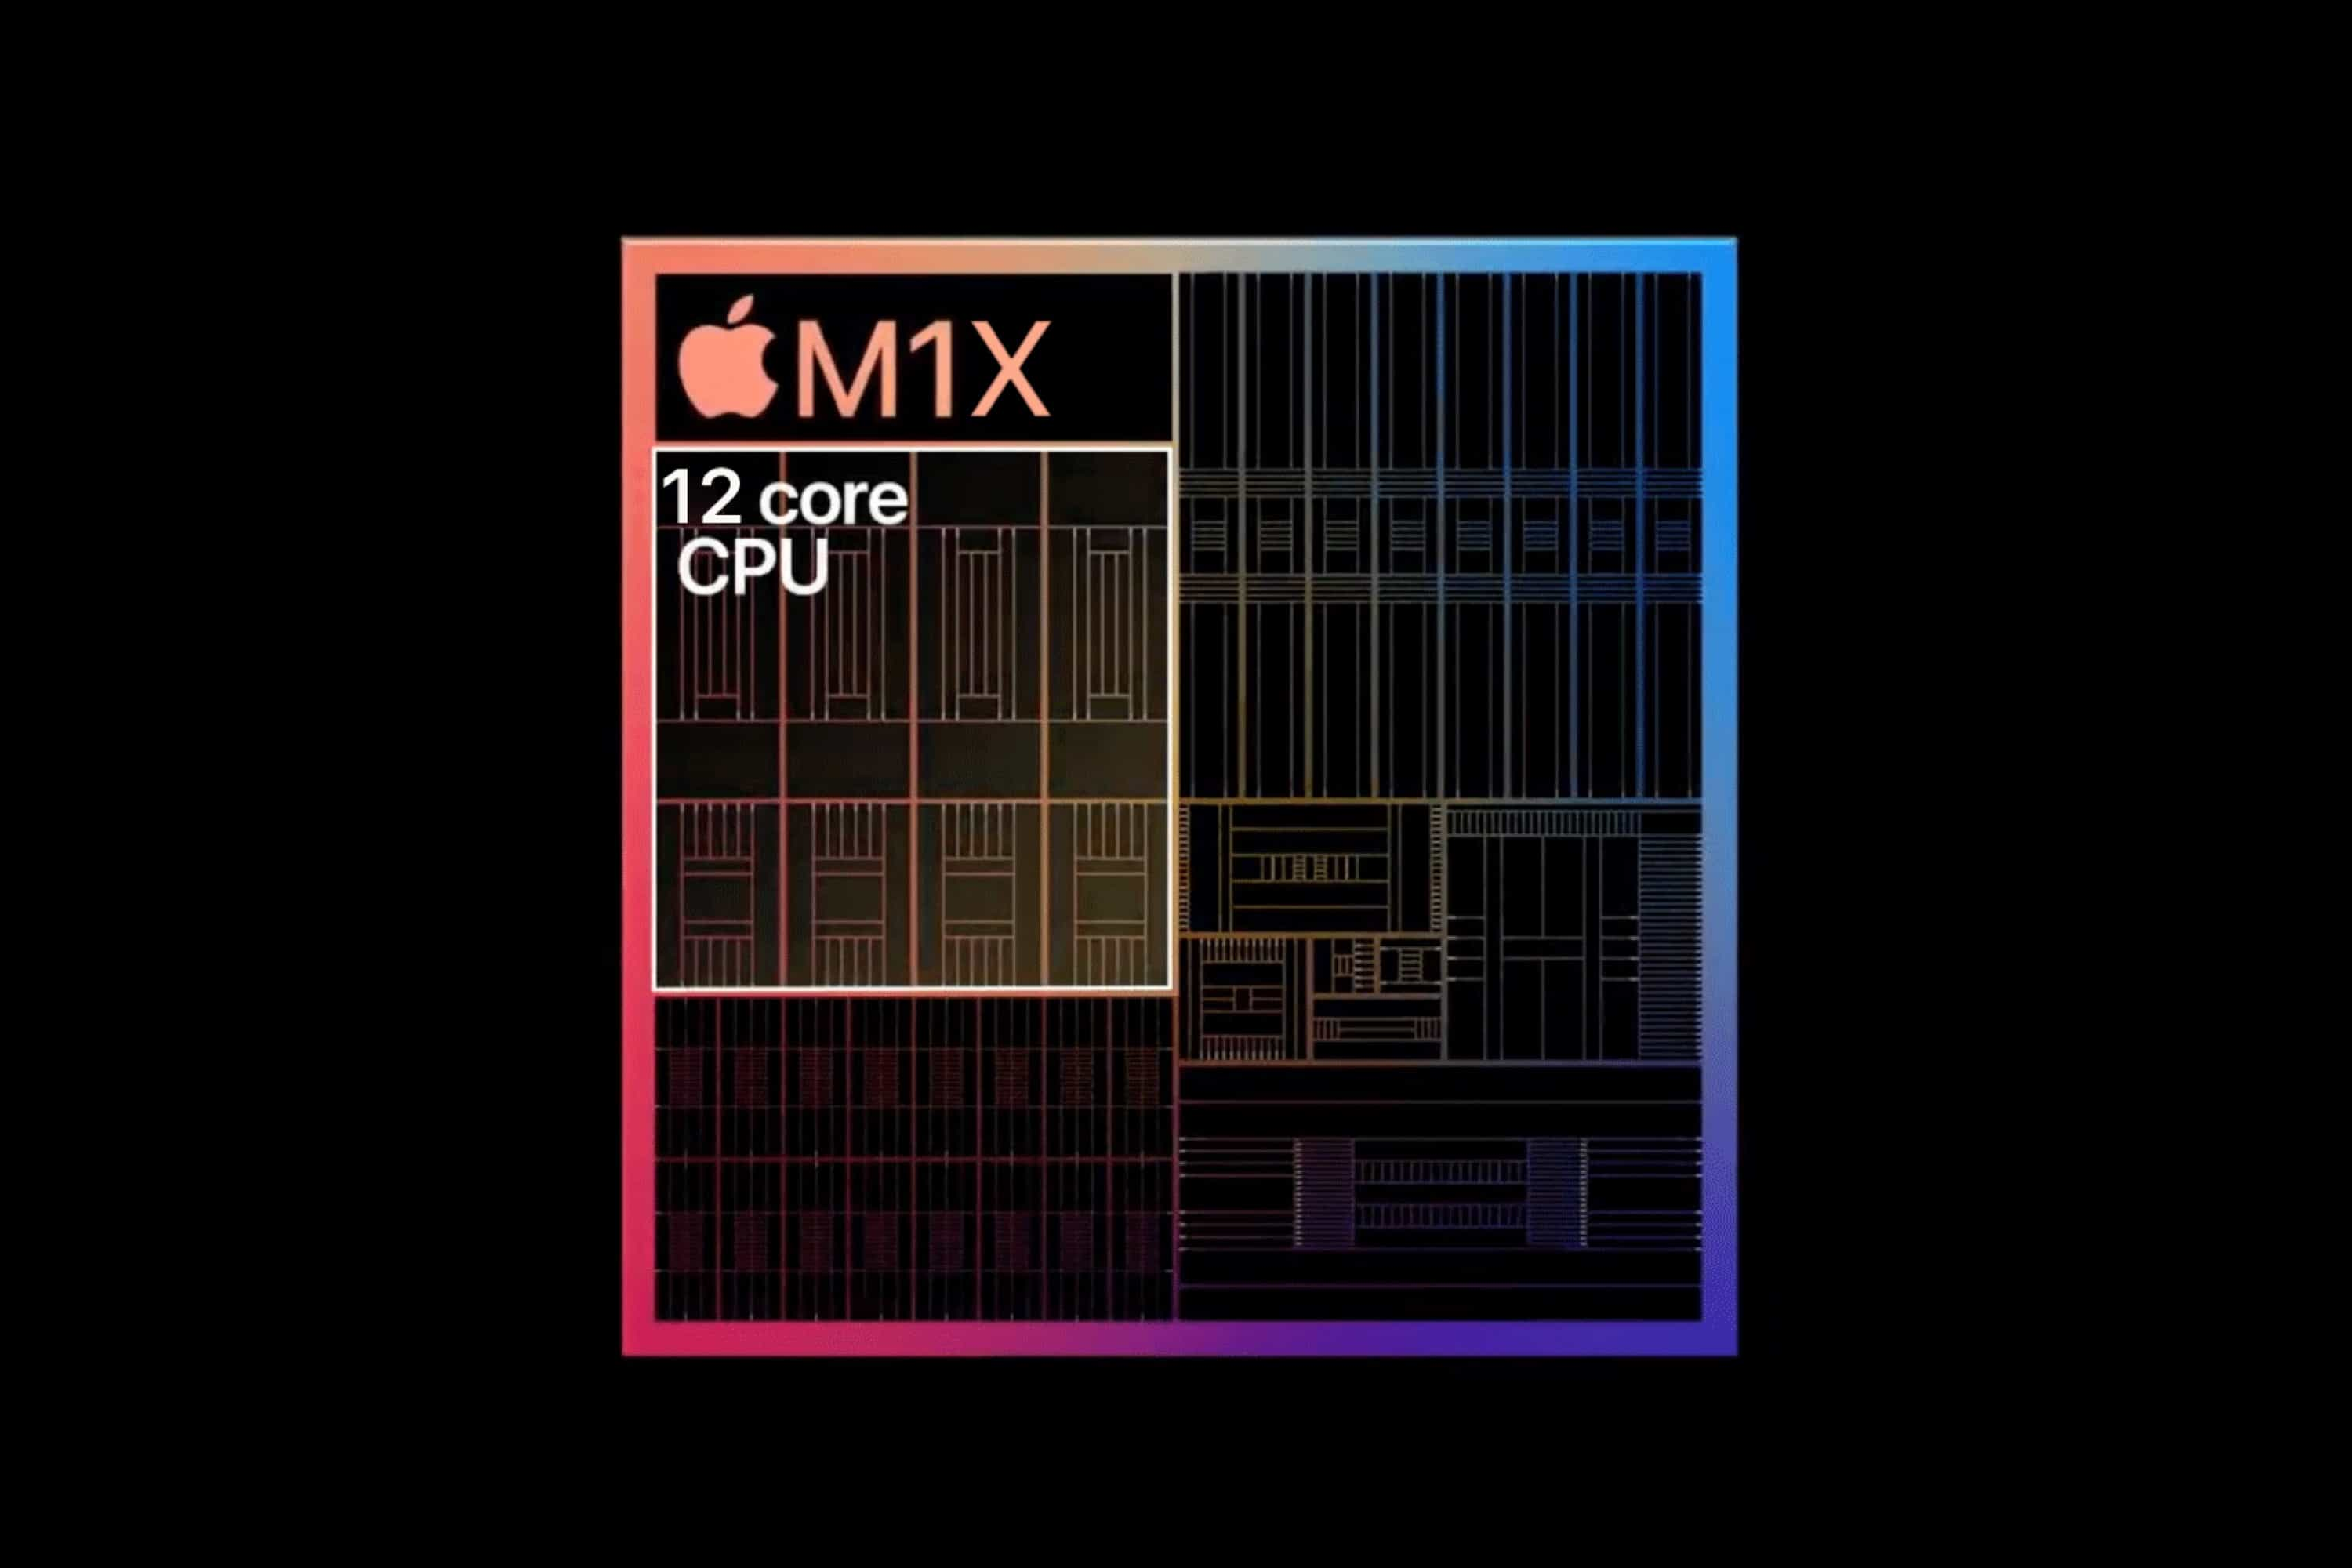 12-core-apple-silicon-m1x-supposedly-leaks-surpasses-m1-20201125-1